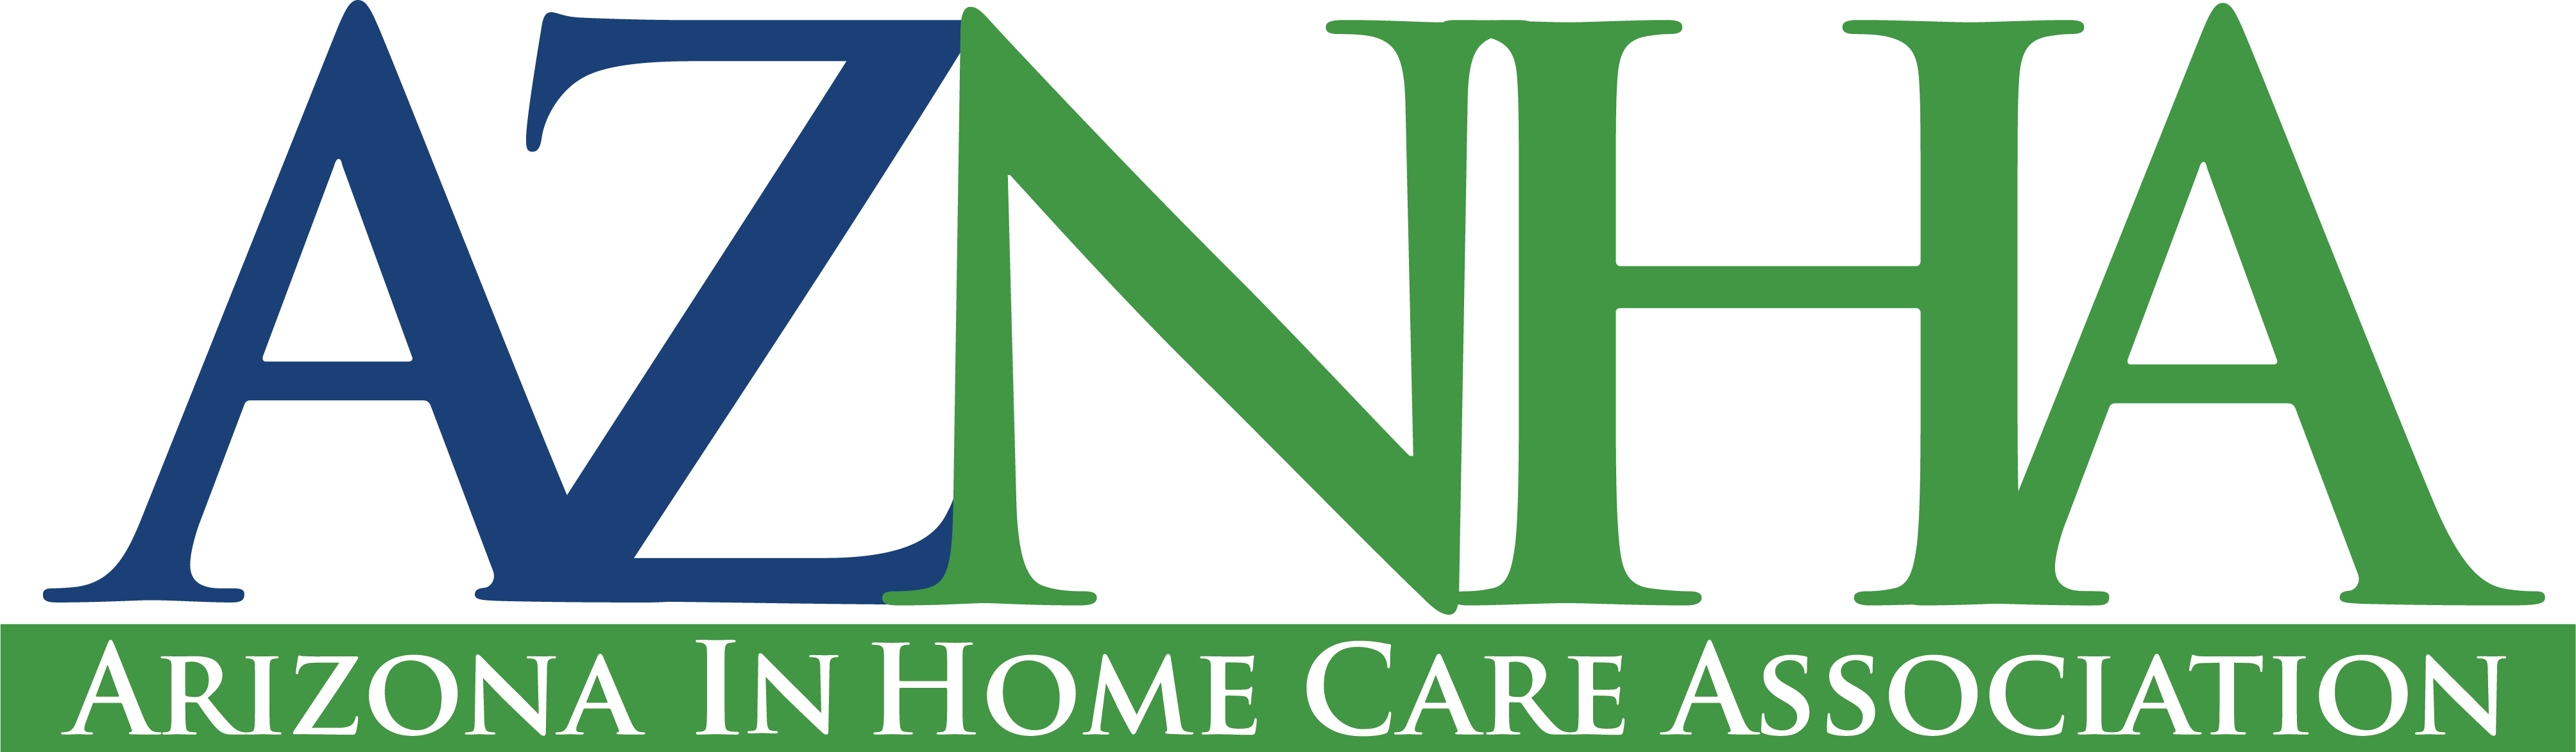 Arizona Home Care Association